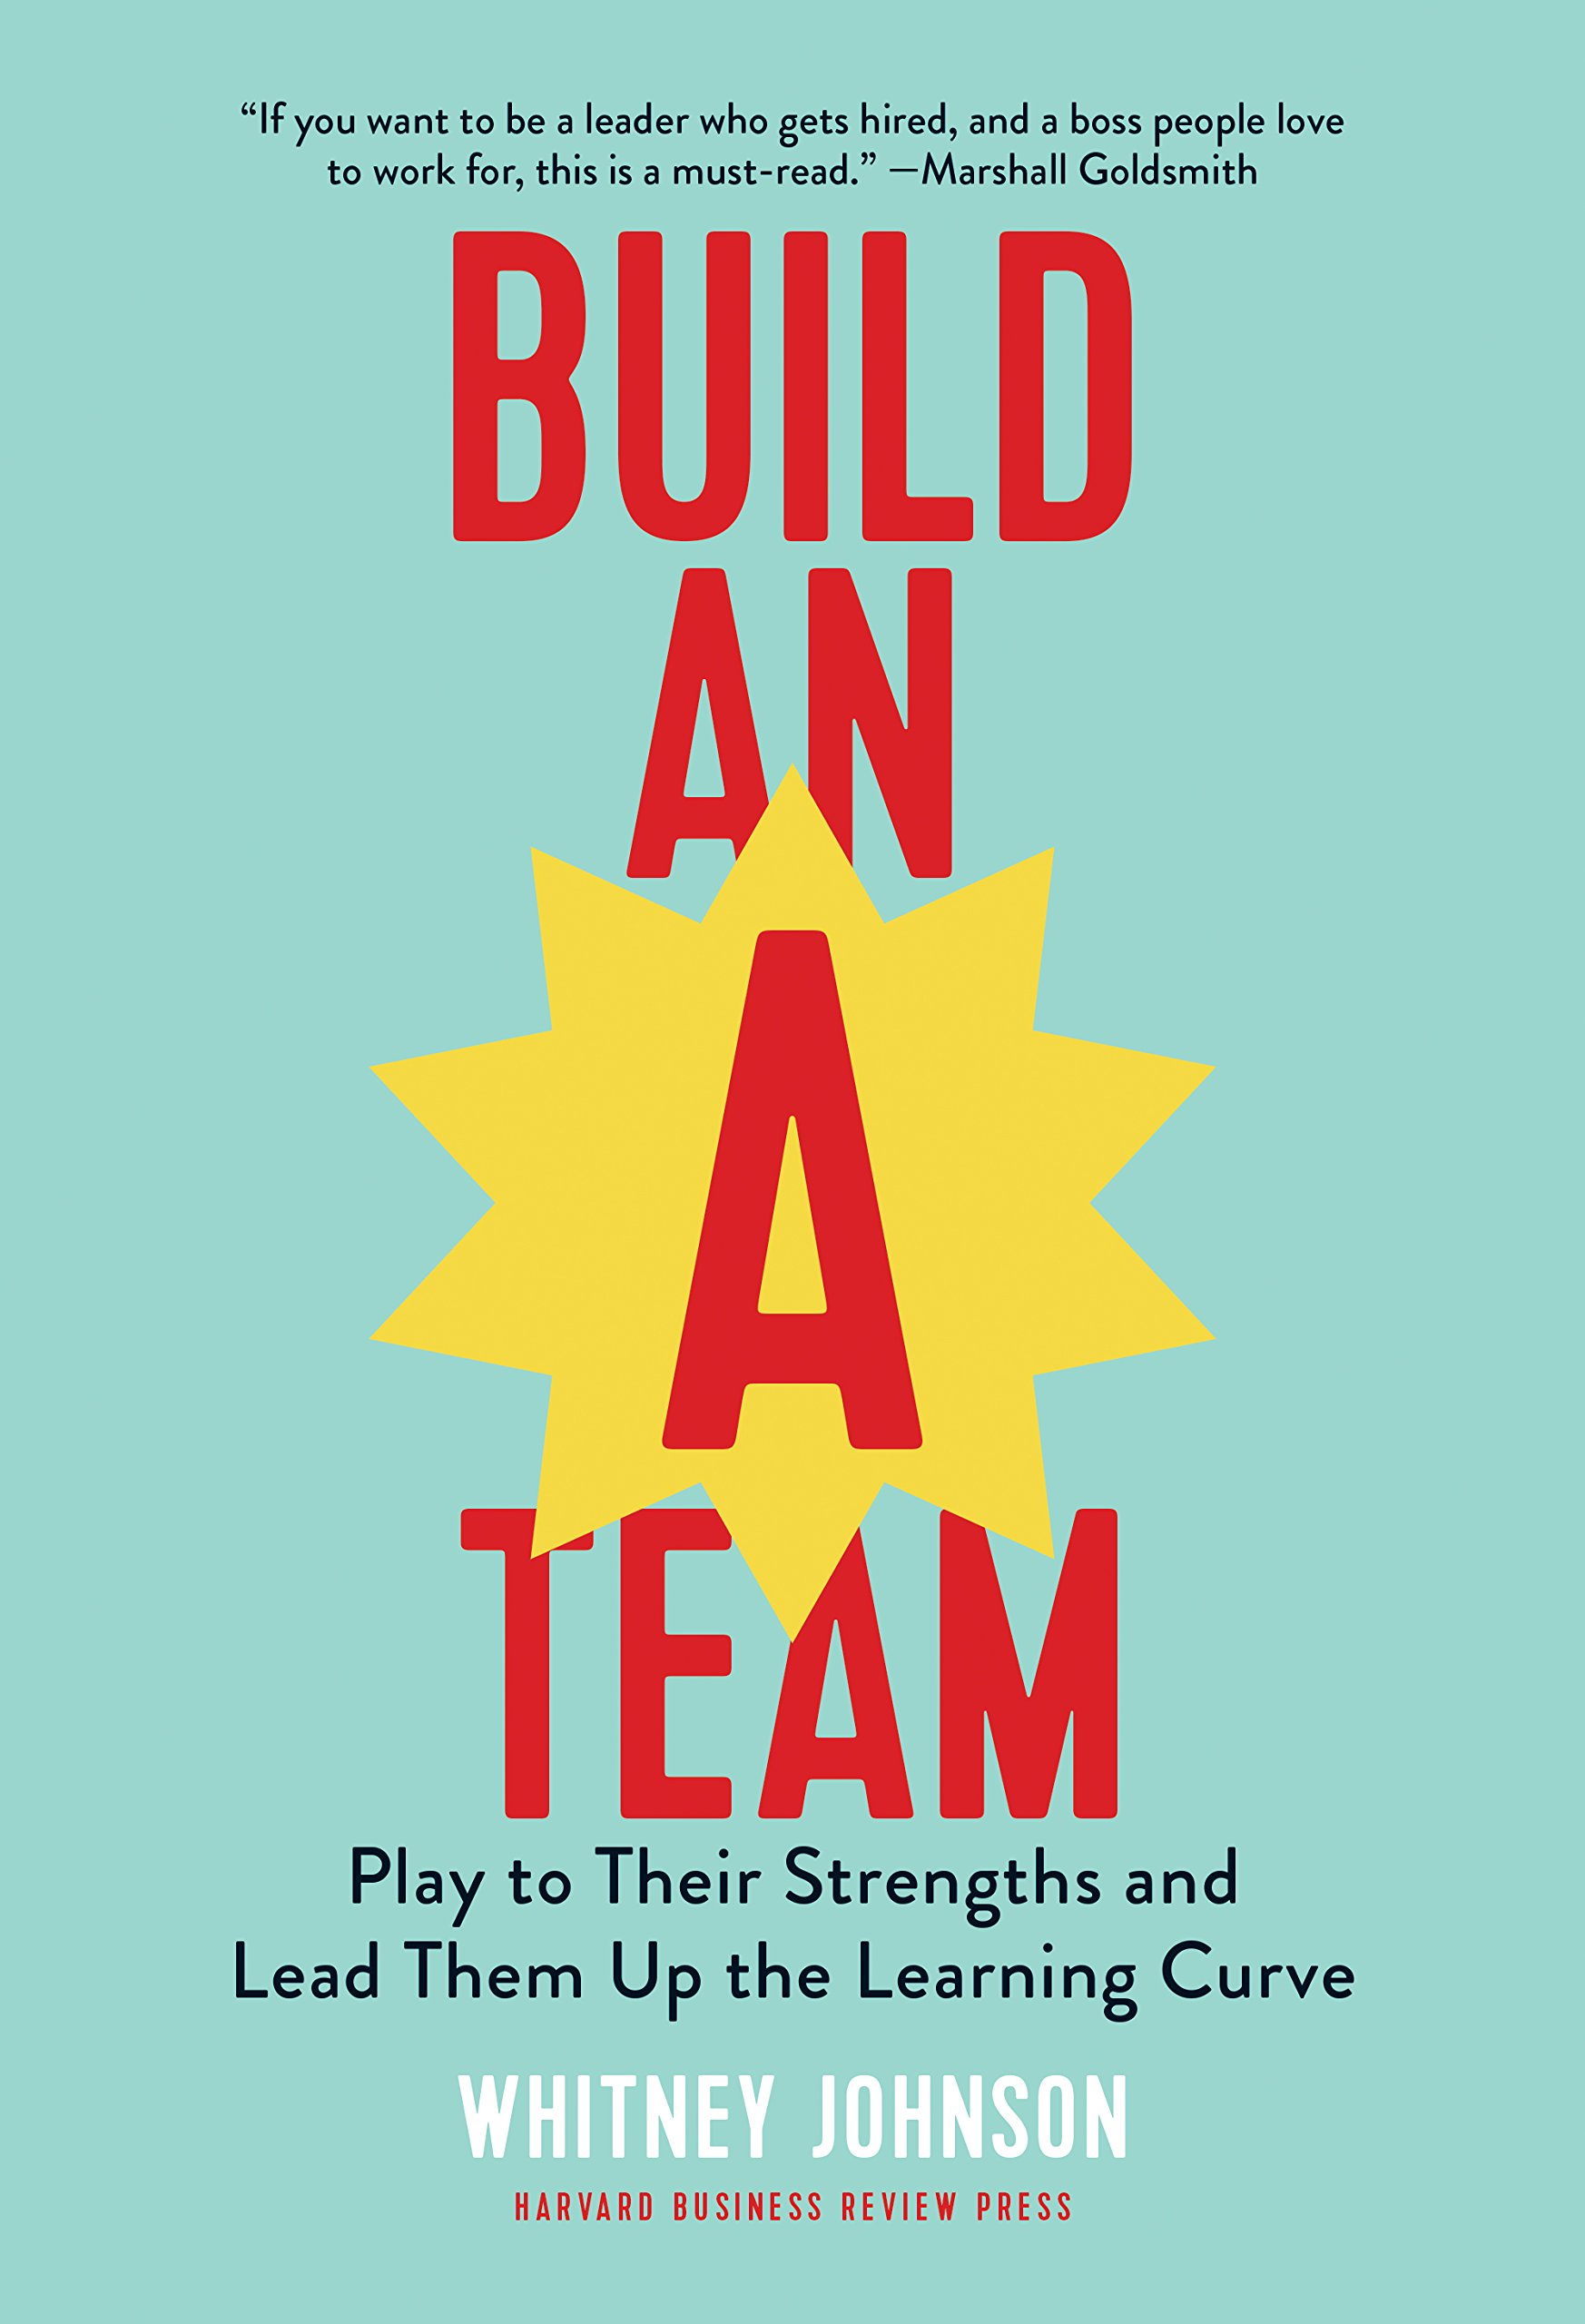 Image OfBuild An A Team: Play To Their Strengths And Lead Them Up The Learning Curve